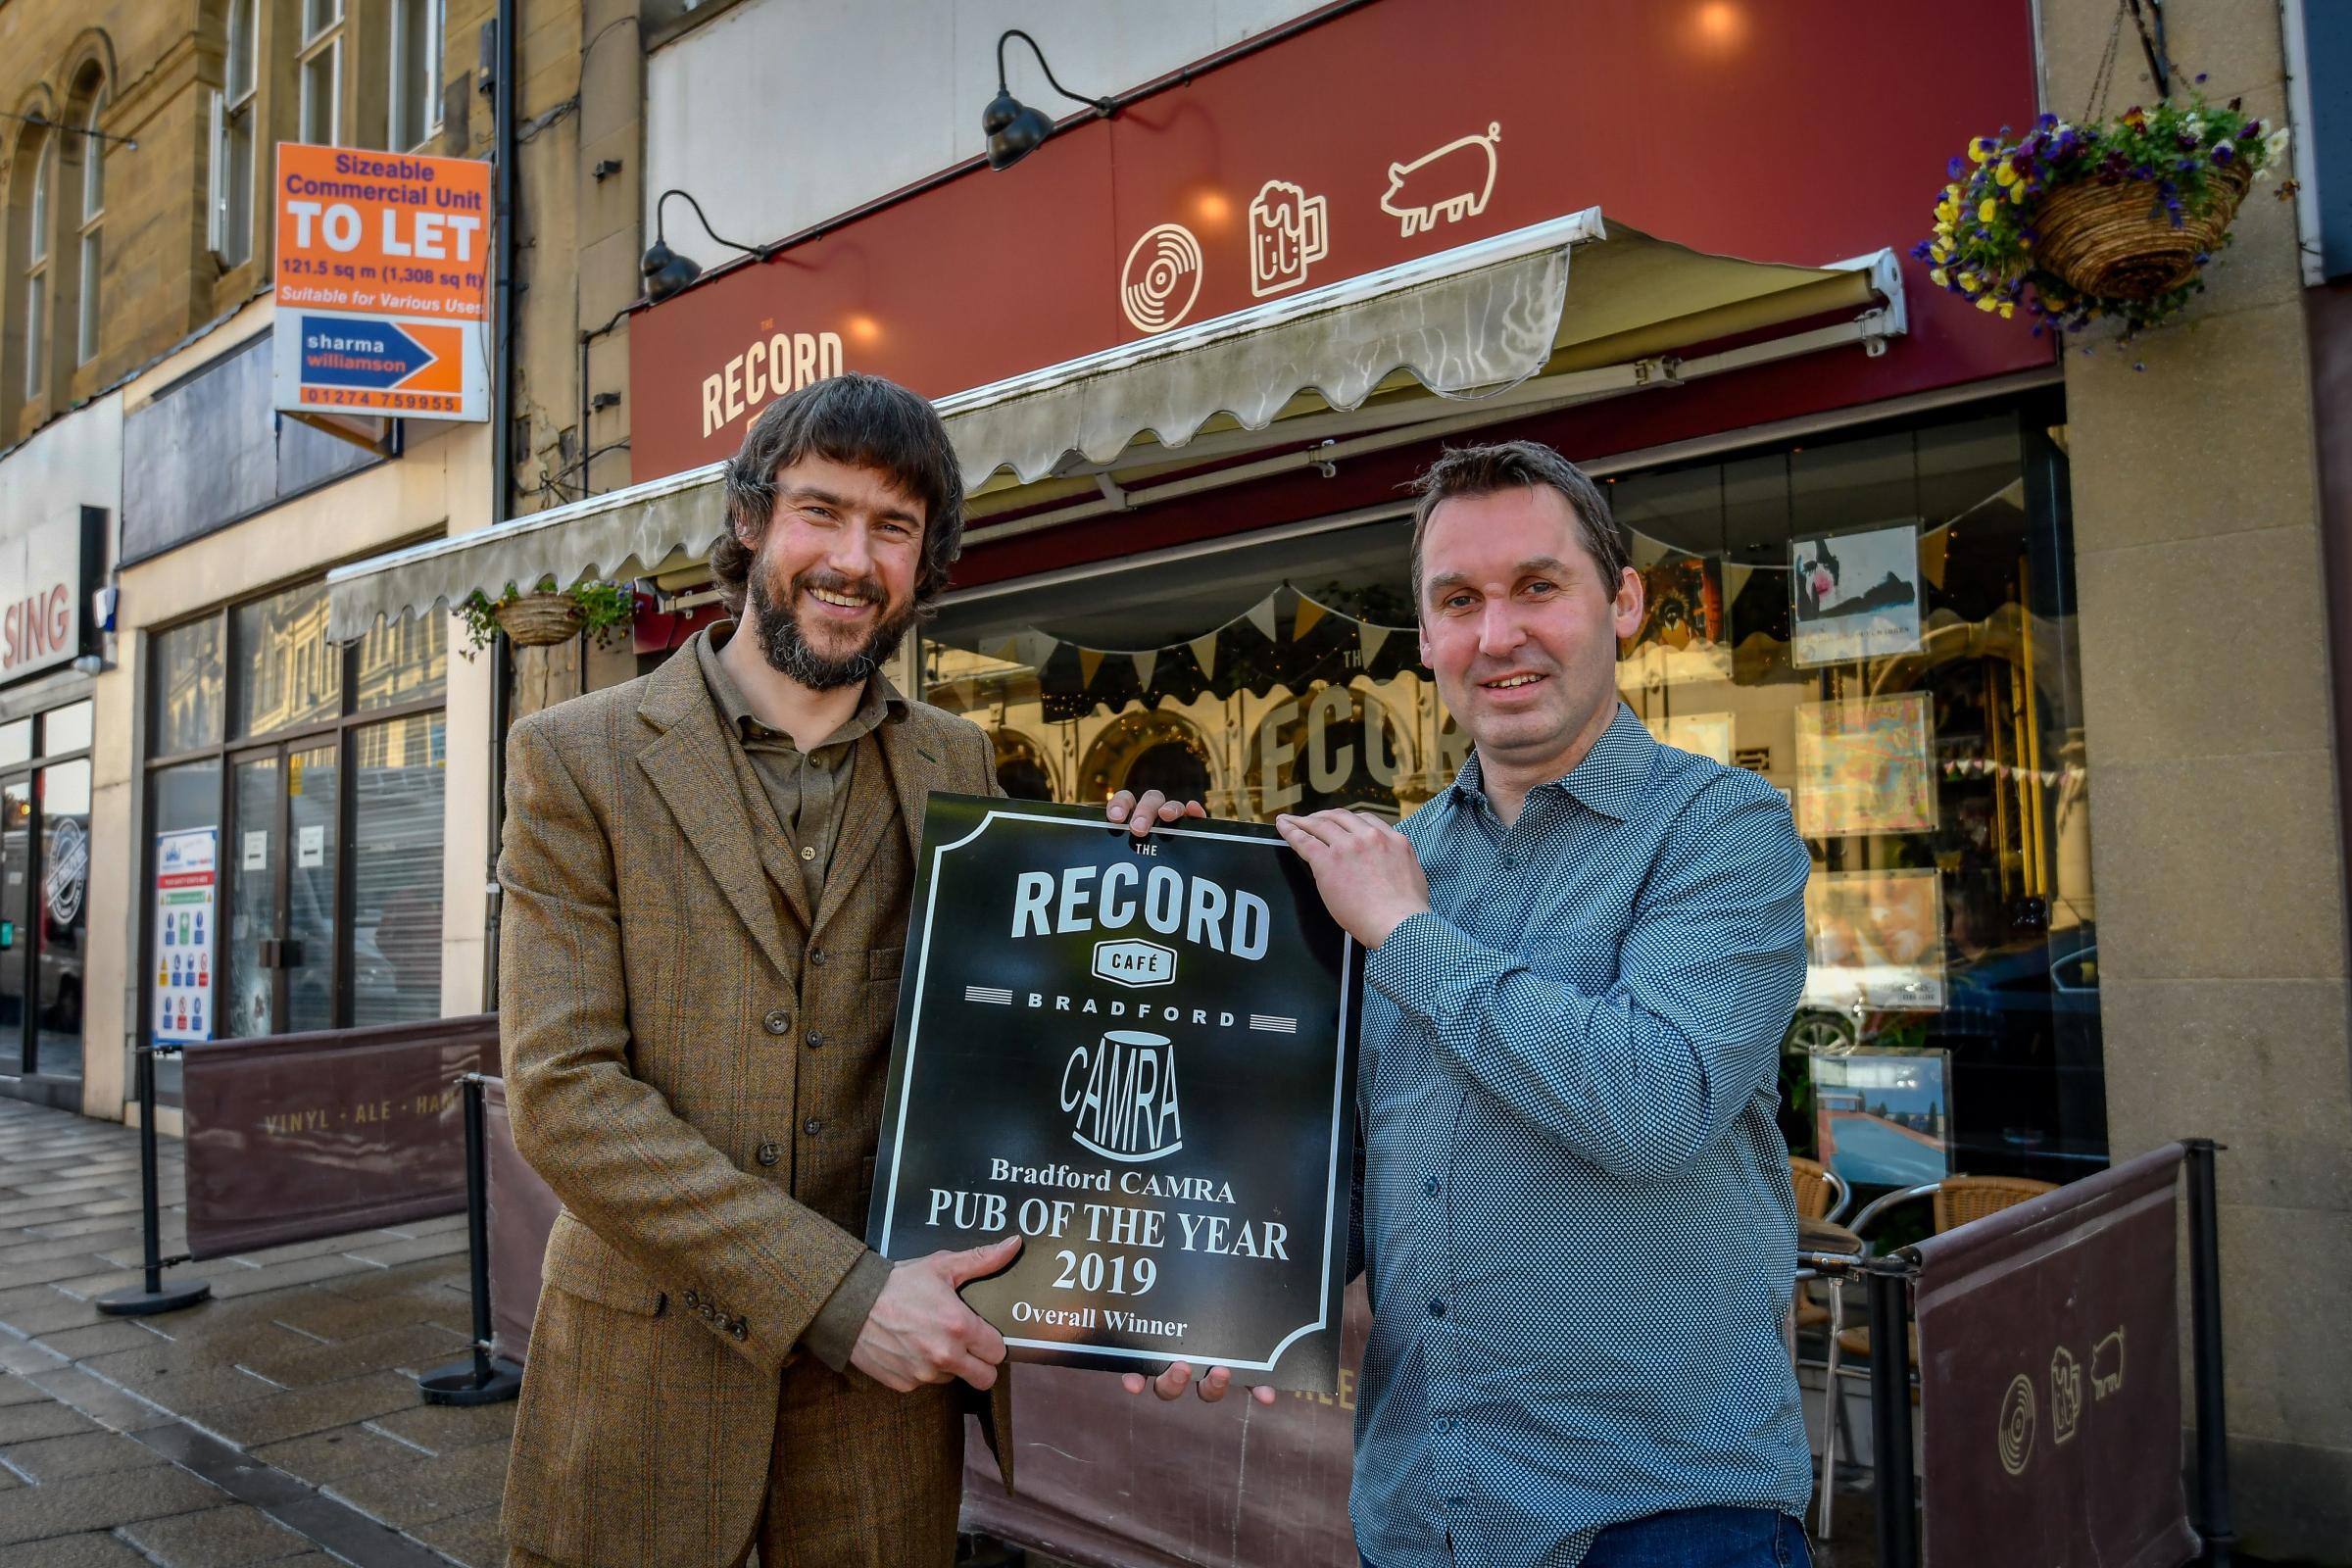 Record Café received Bradford CAMRA Pub of the Year prize